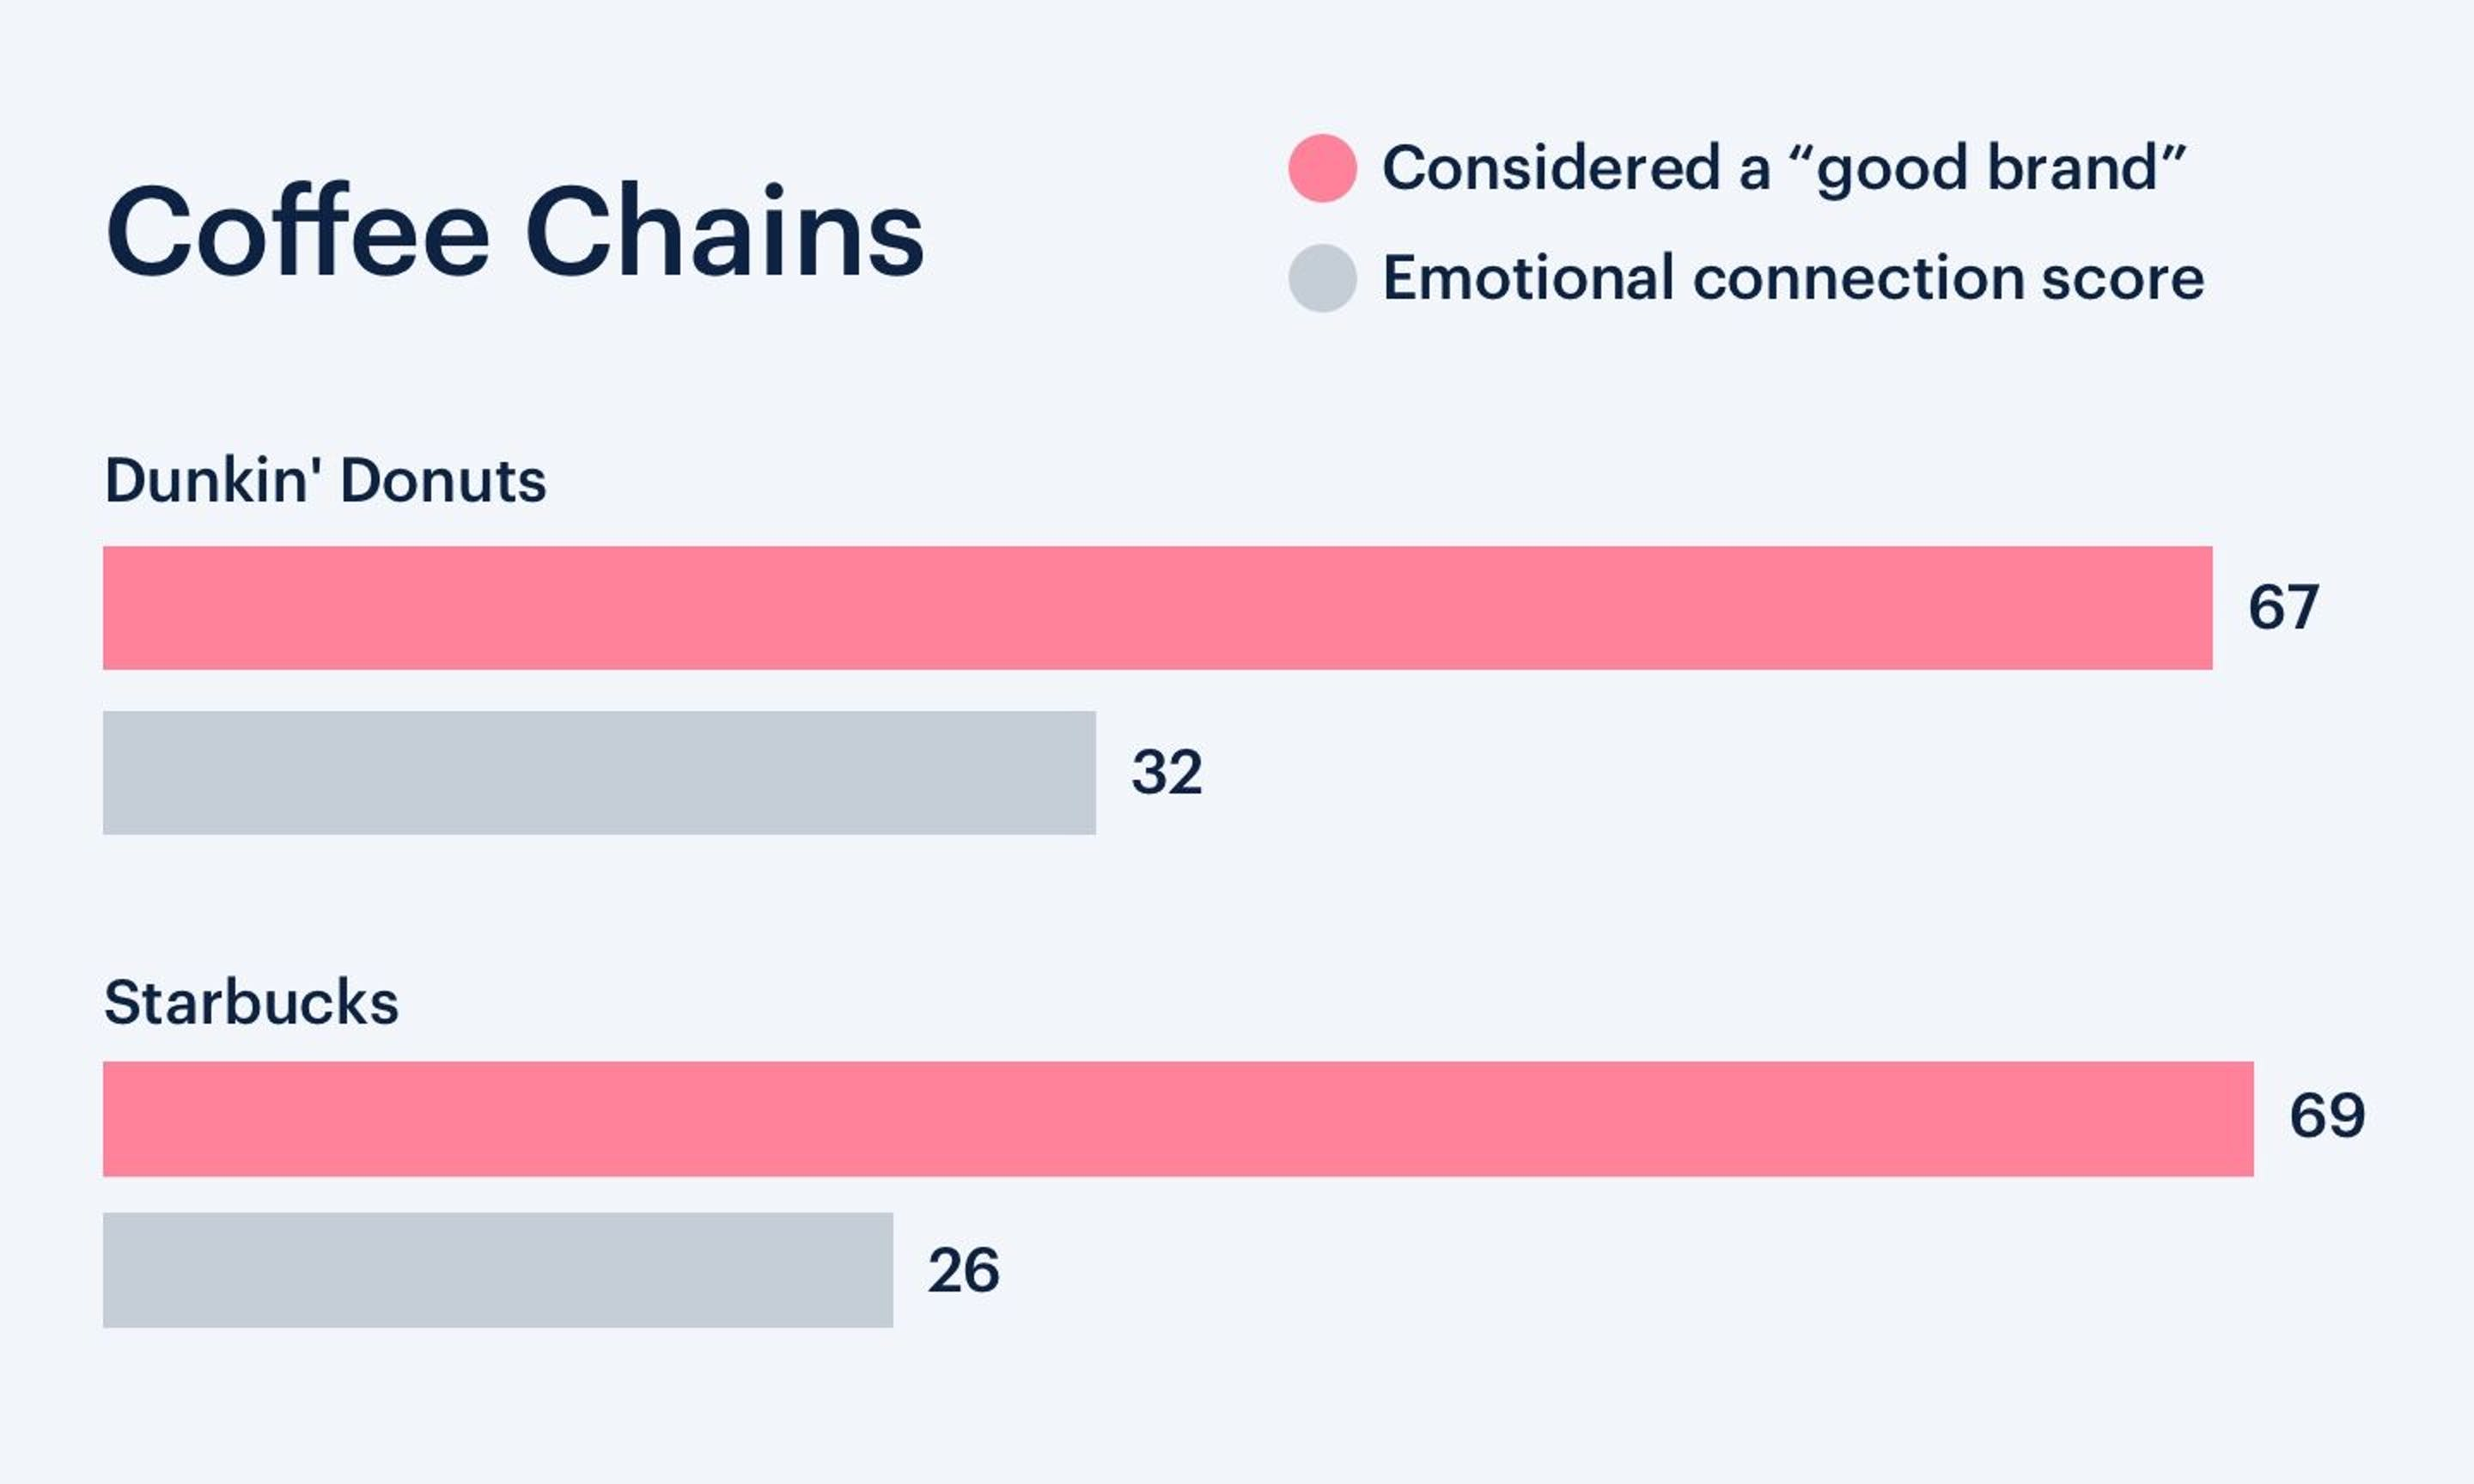 The Emotional Connection score